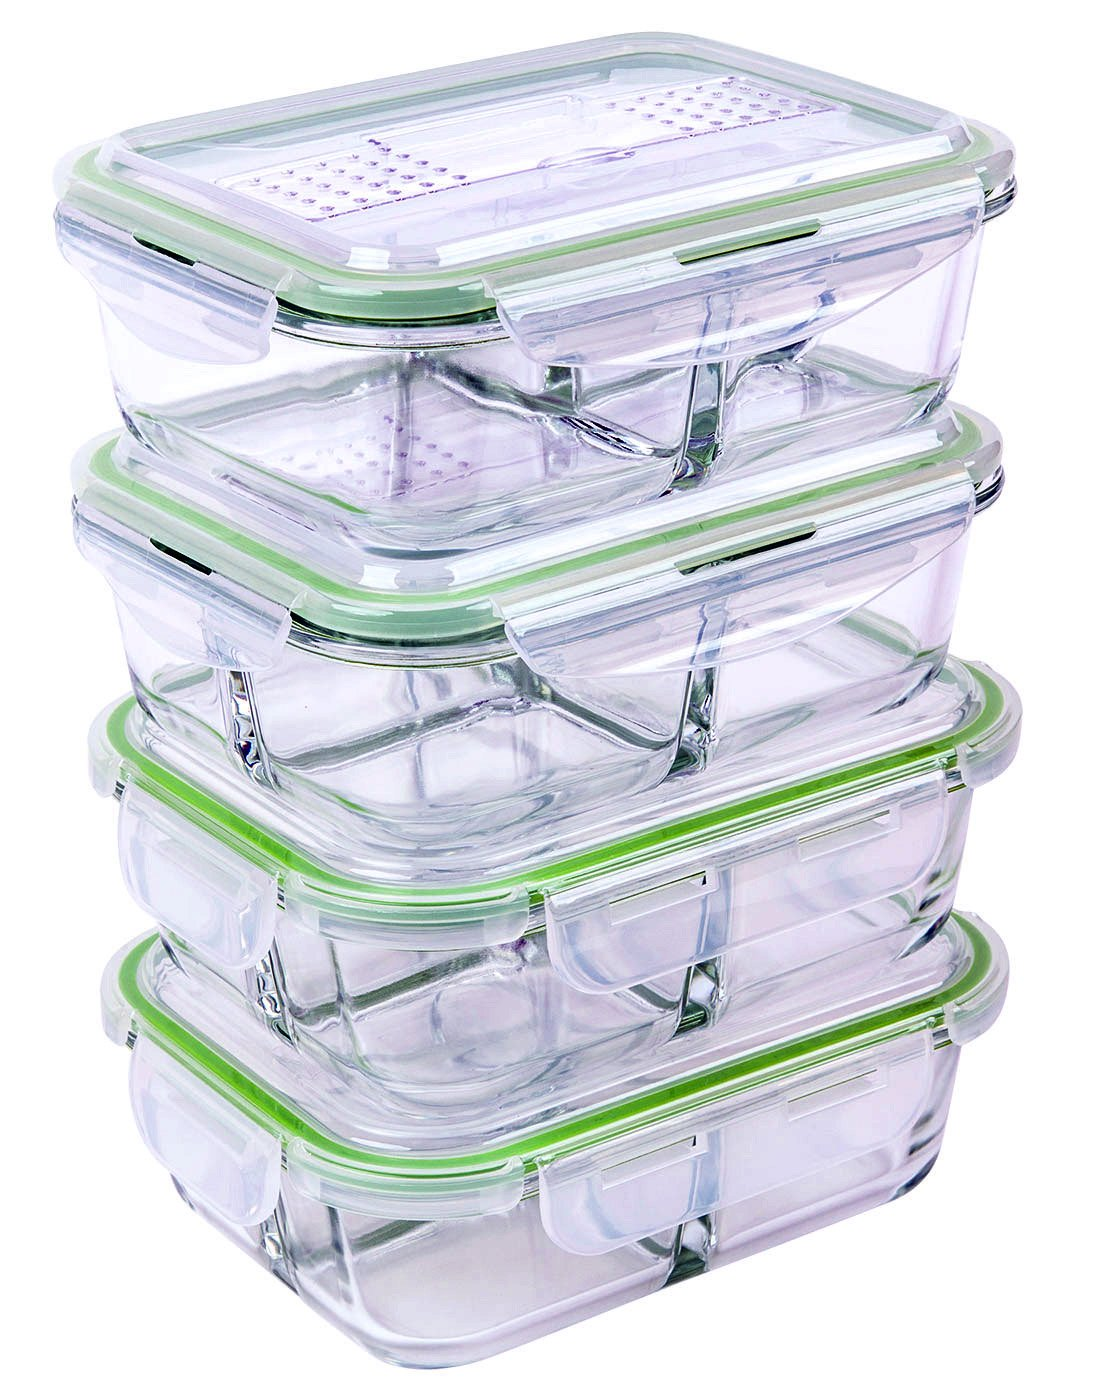 tayyakoushi 35 5 oz 3 compartment glass meal prep food storage containers set airtight locking lids microwave freezer oven dishwasher safe 2